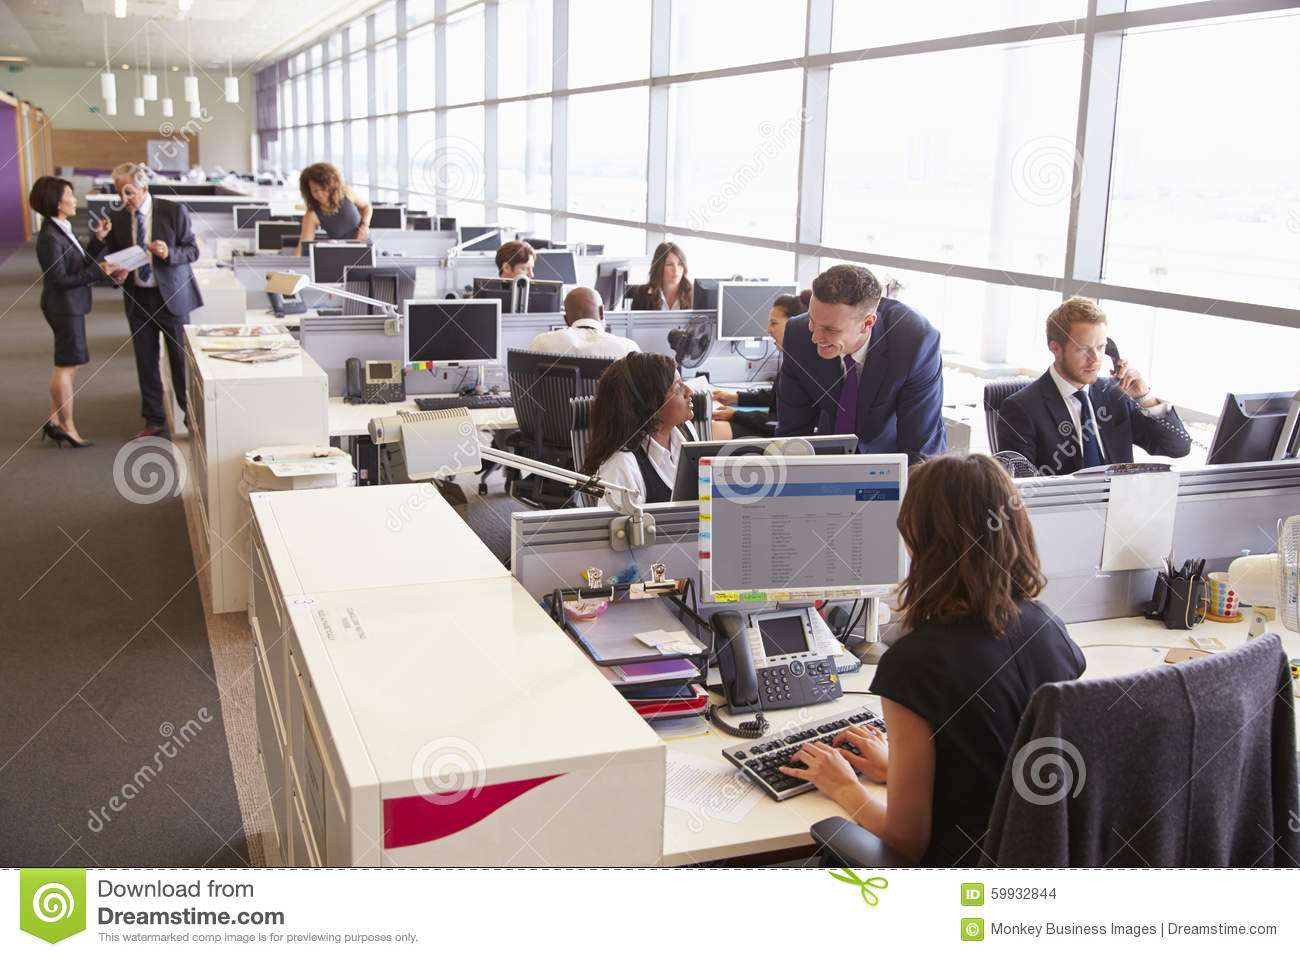 how to deal with an open office